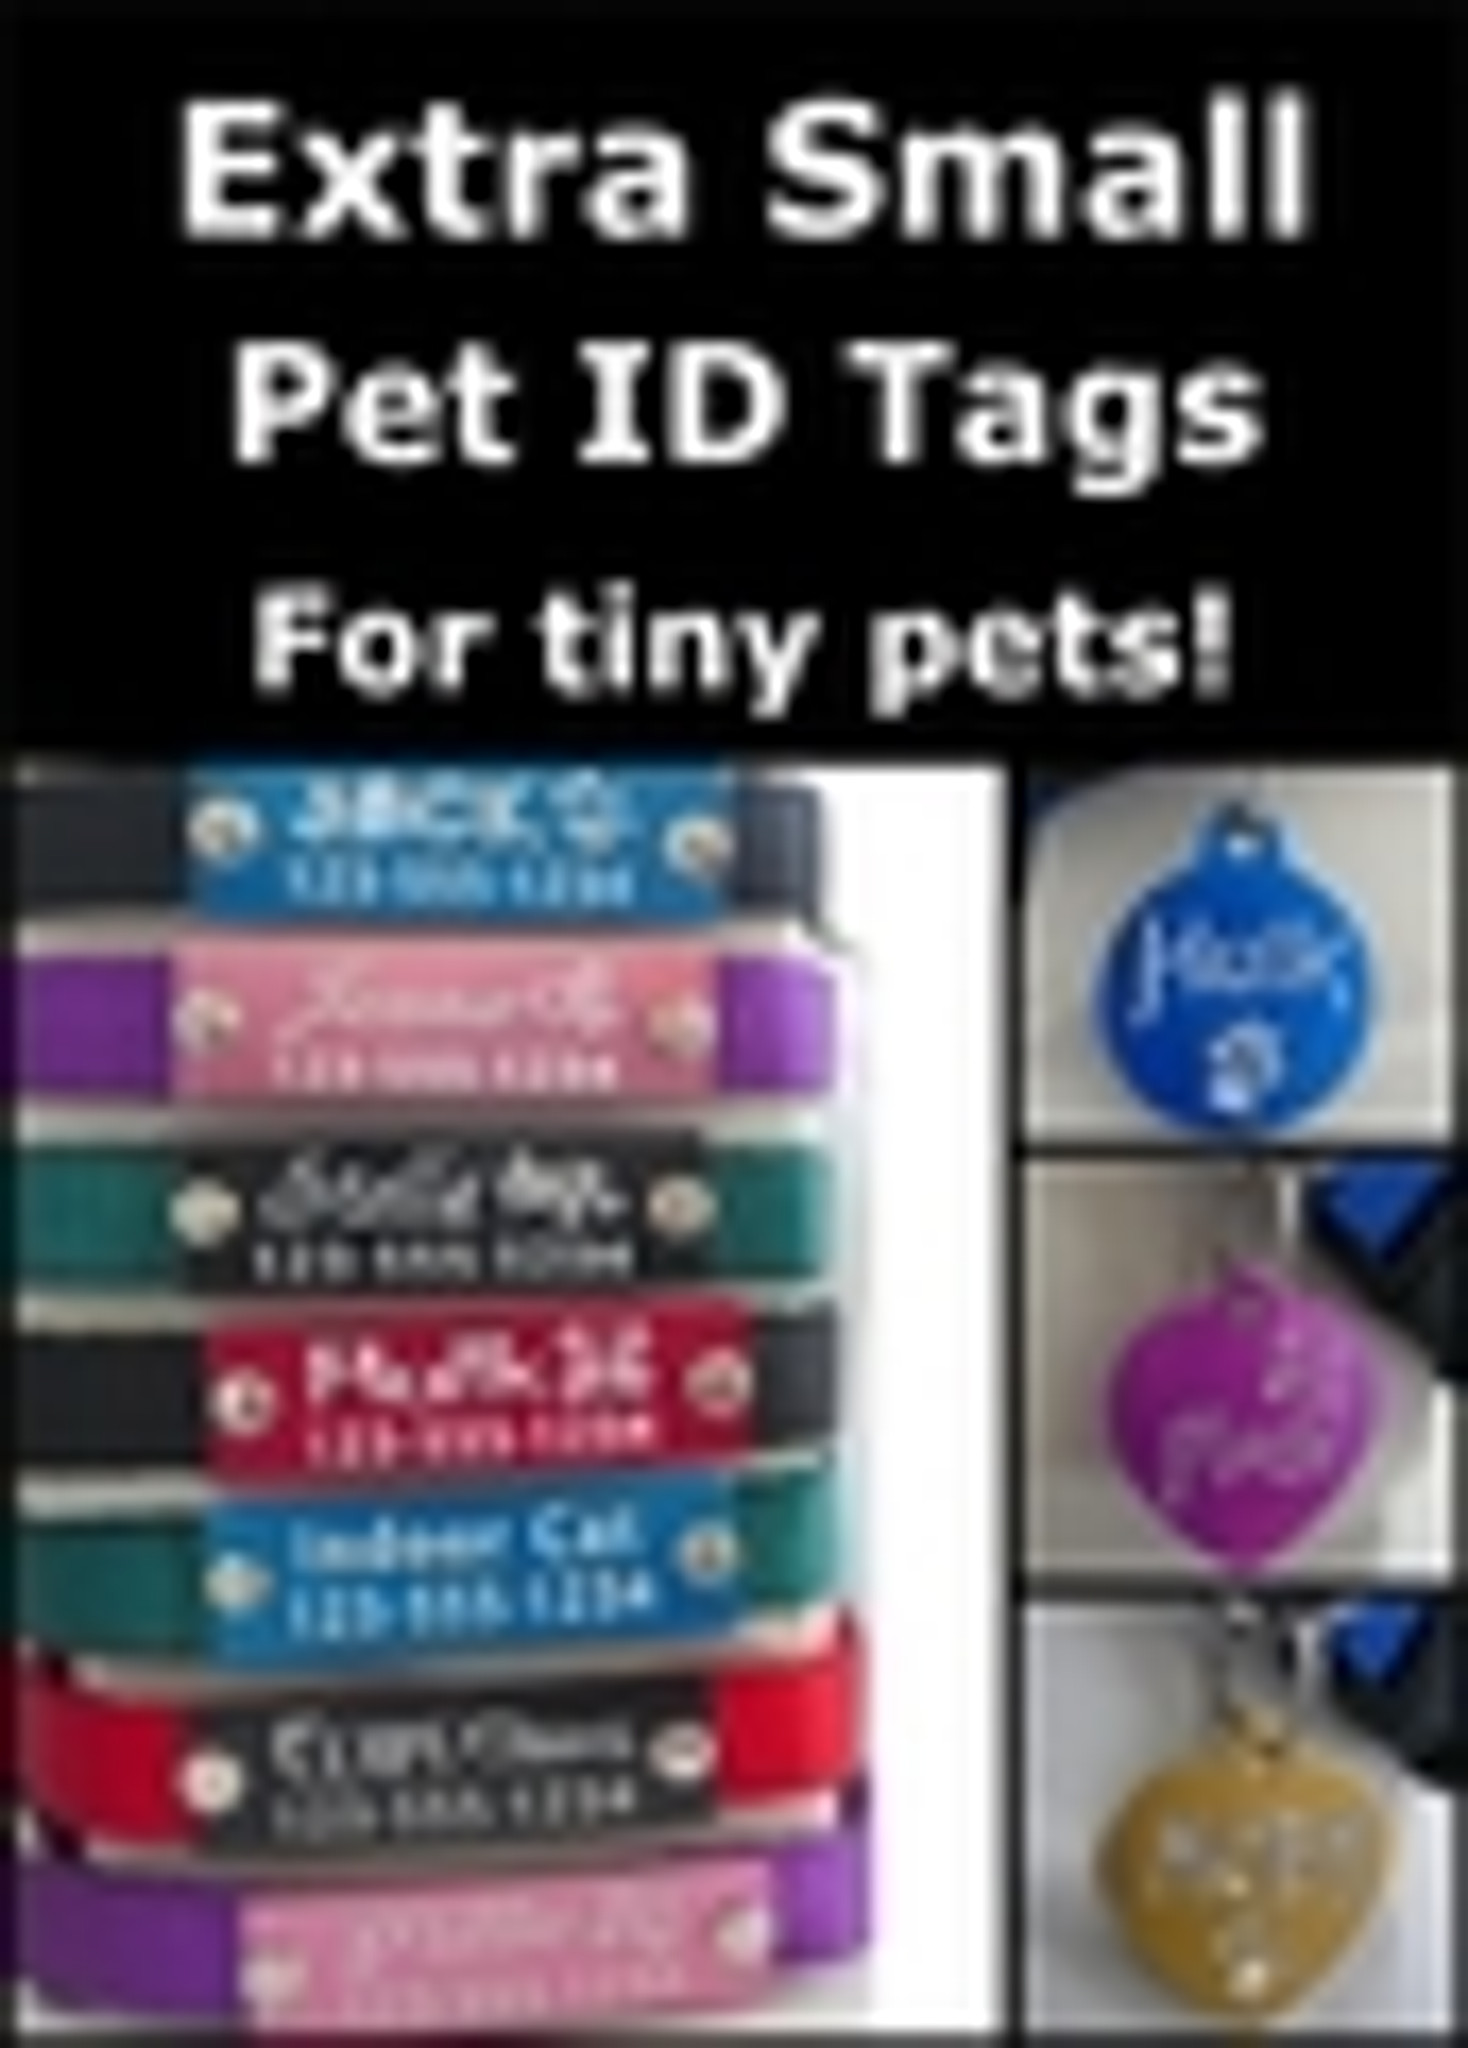 Extra Small Pet ID Tags (for tiny pets!)